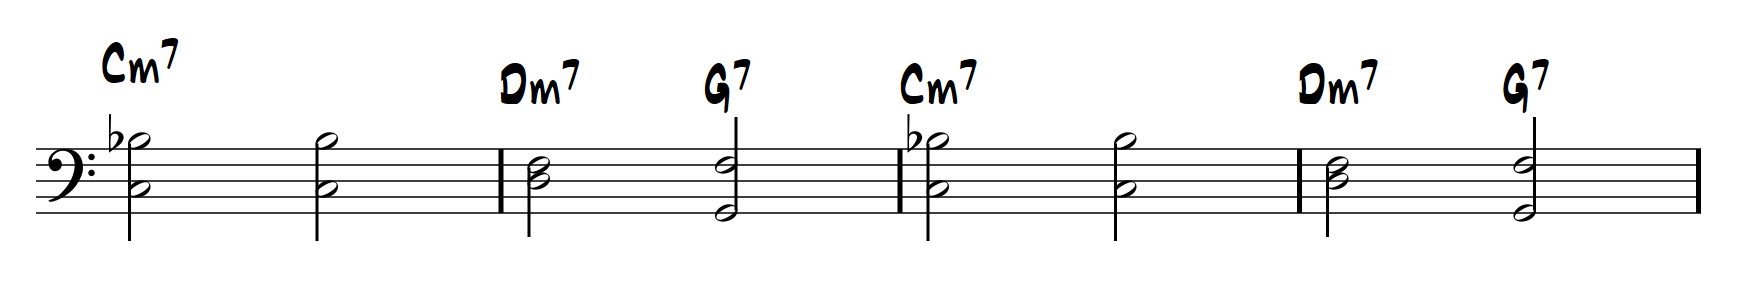 LearnJazzPiano.com - Softly as in a Morning Sunrise, figure 1